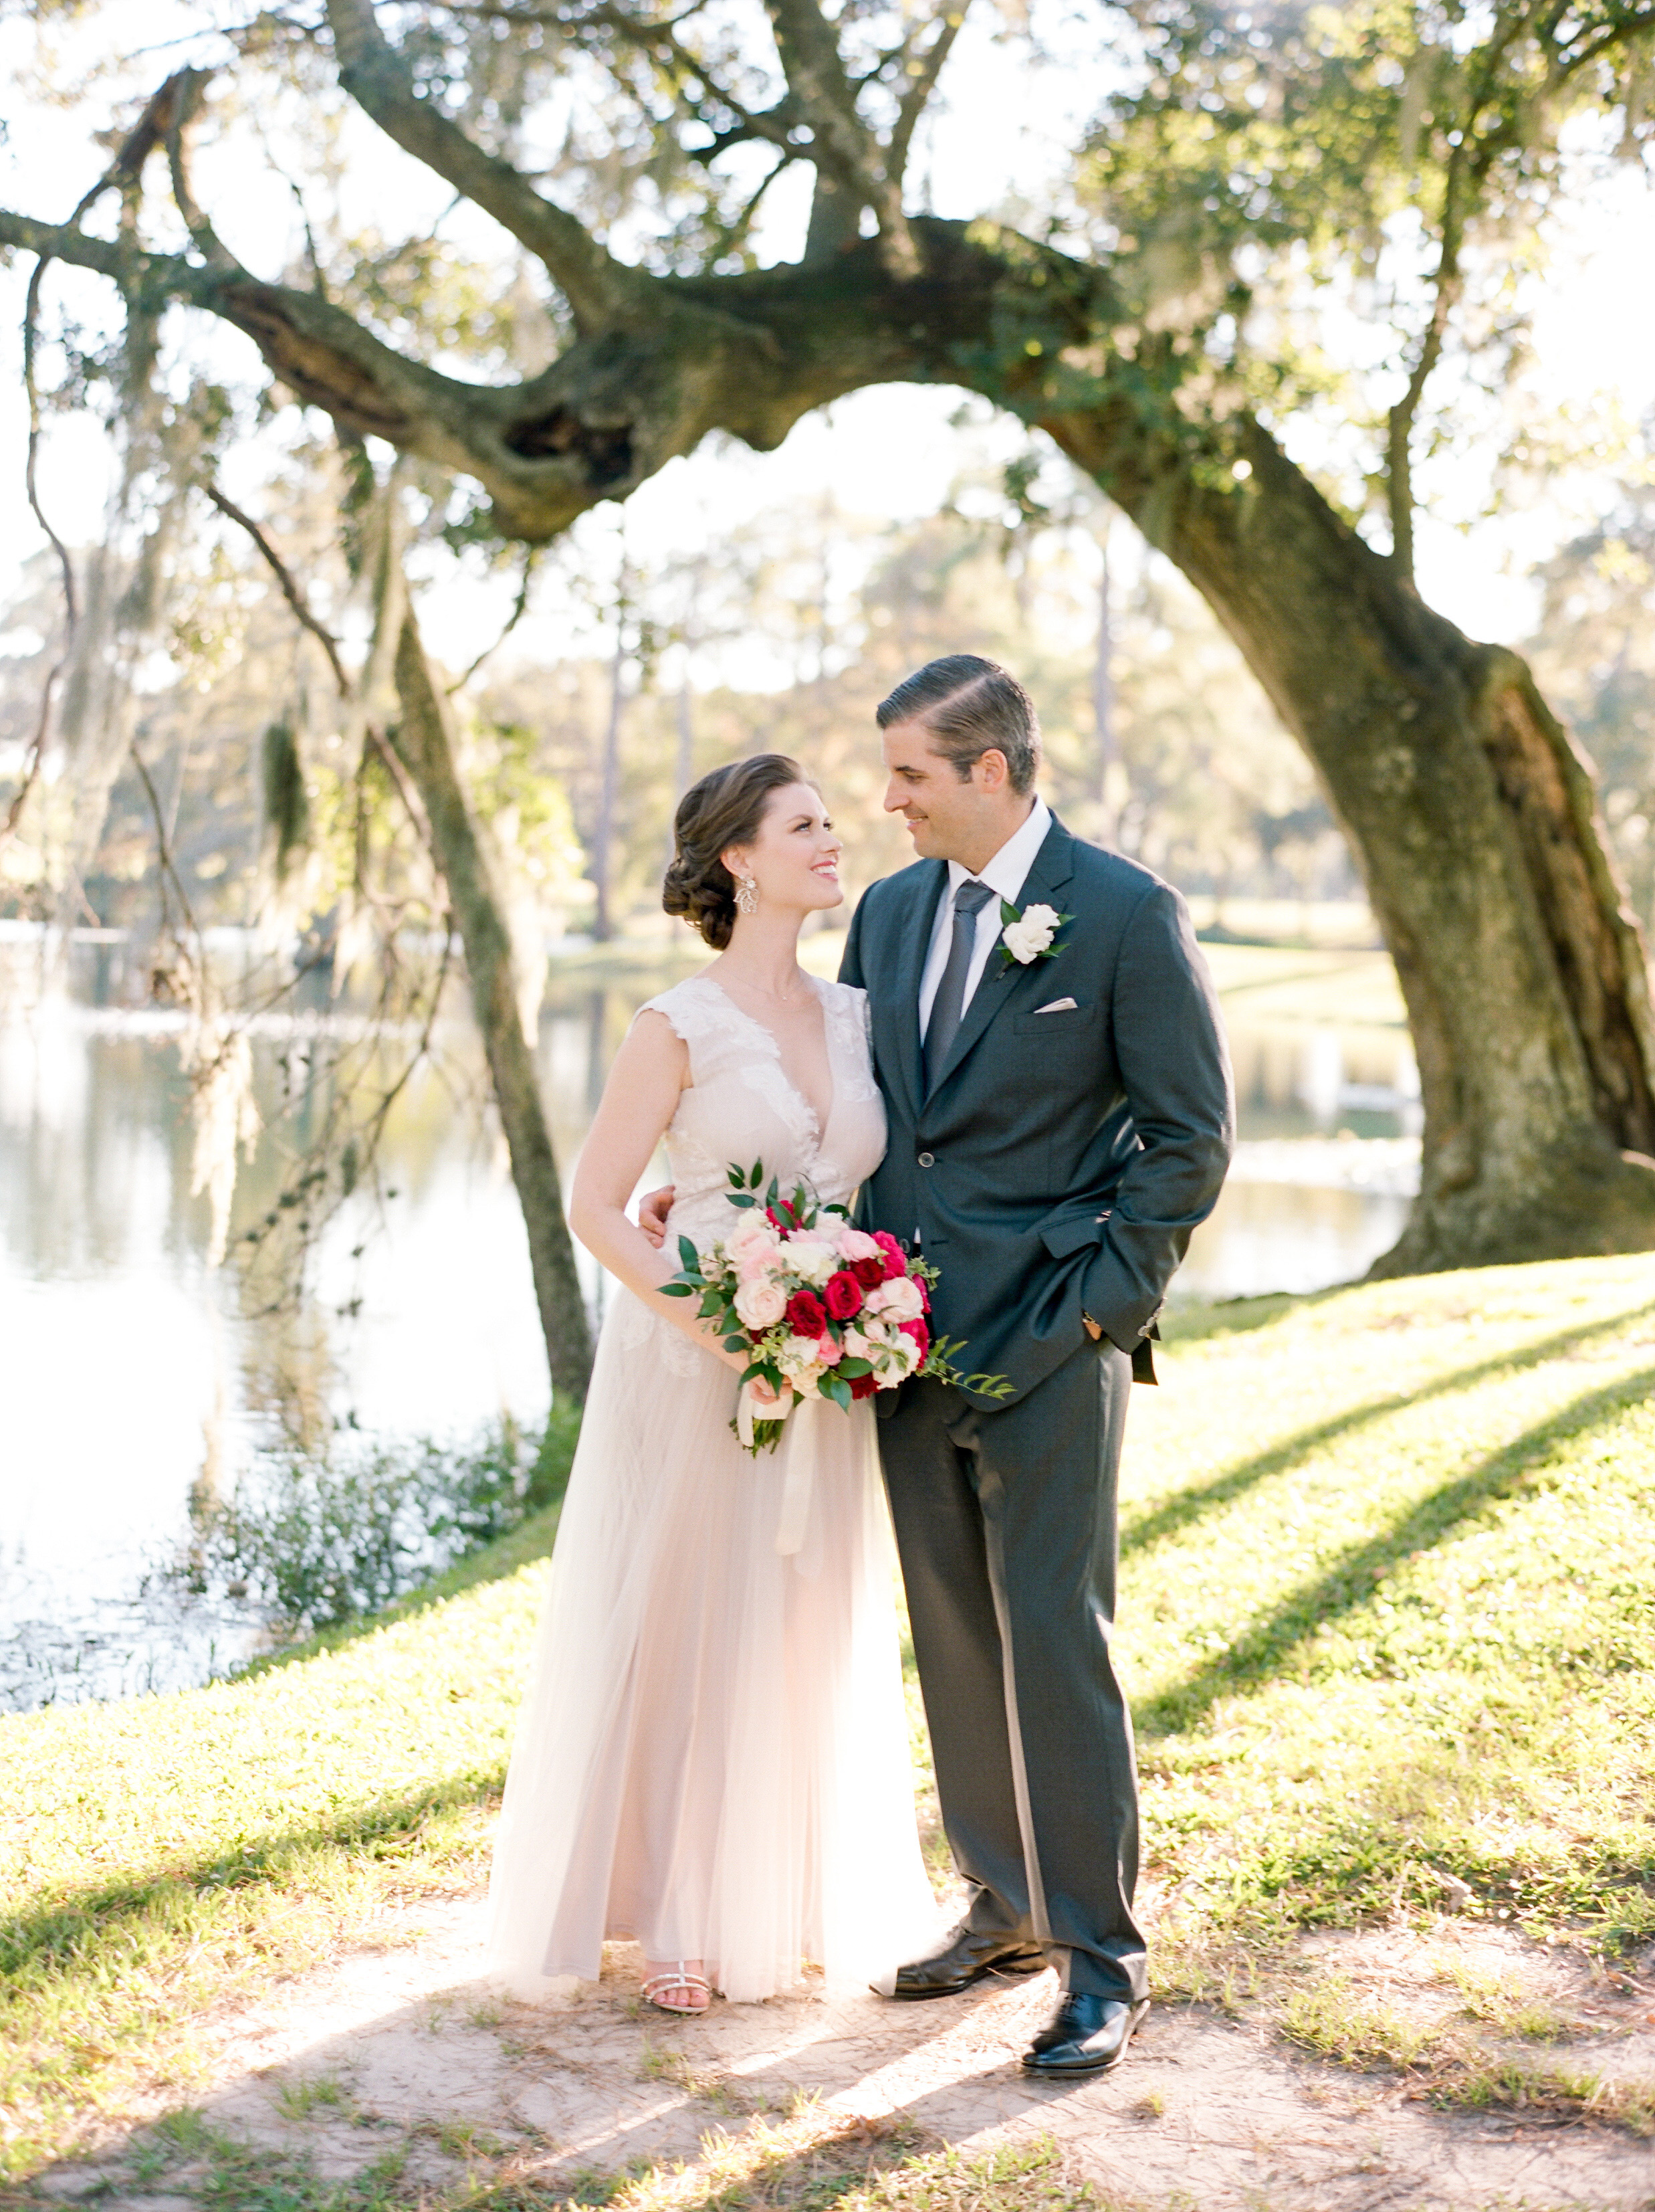 Houston-Wedding-Photographer-Lakeside-Country-Club-First-Look-Bride-Groom-Formals-Film-Fine-Art-Photography-23.jpg